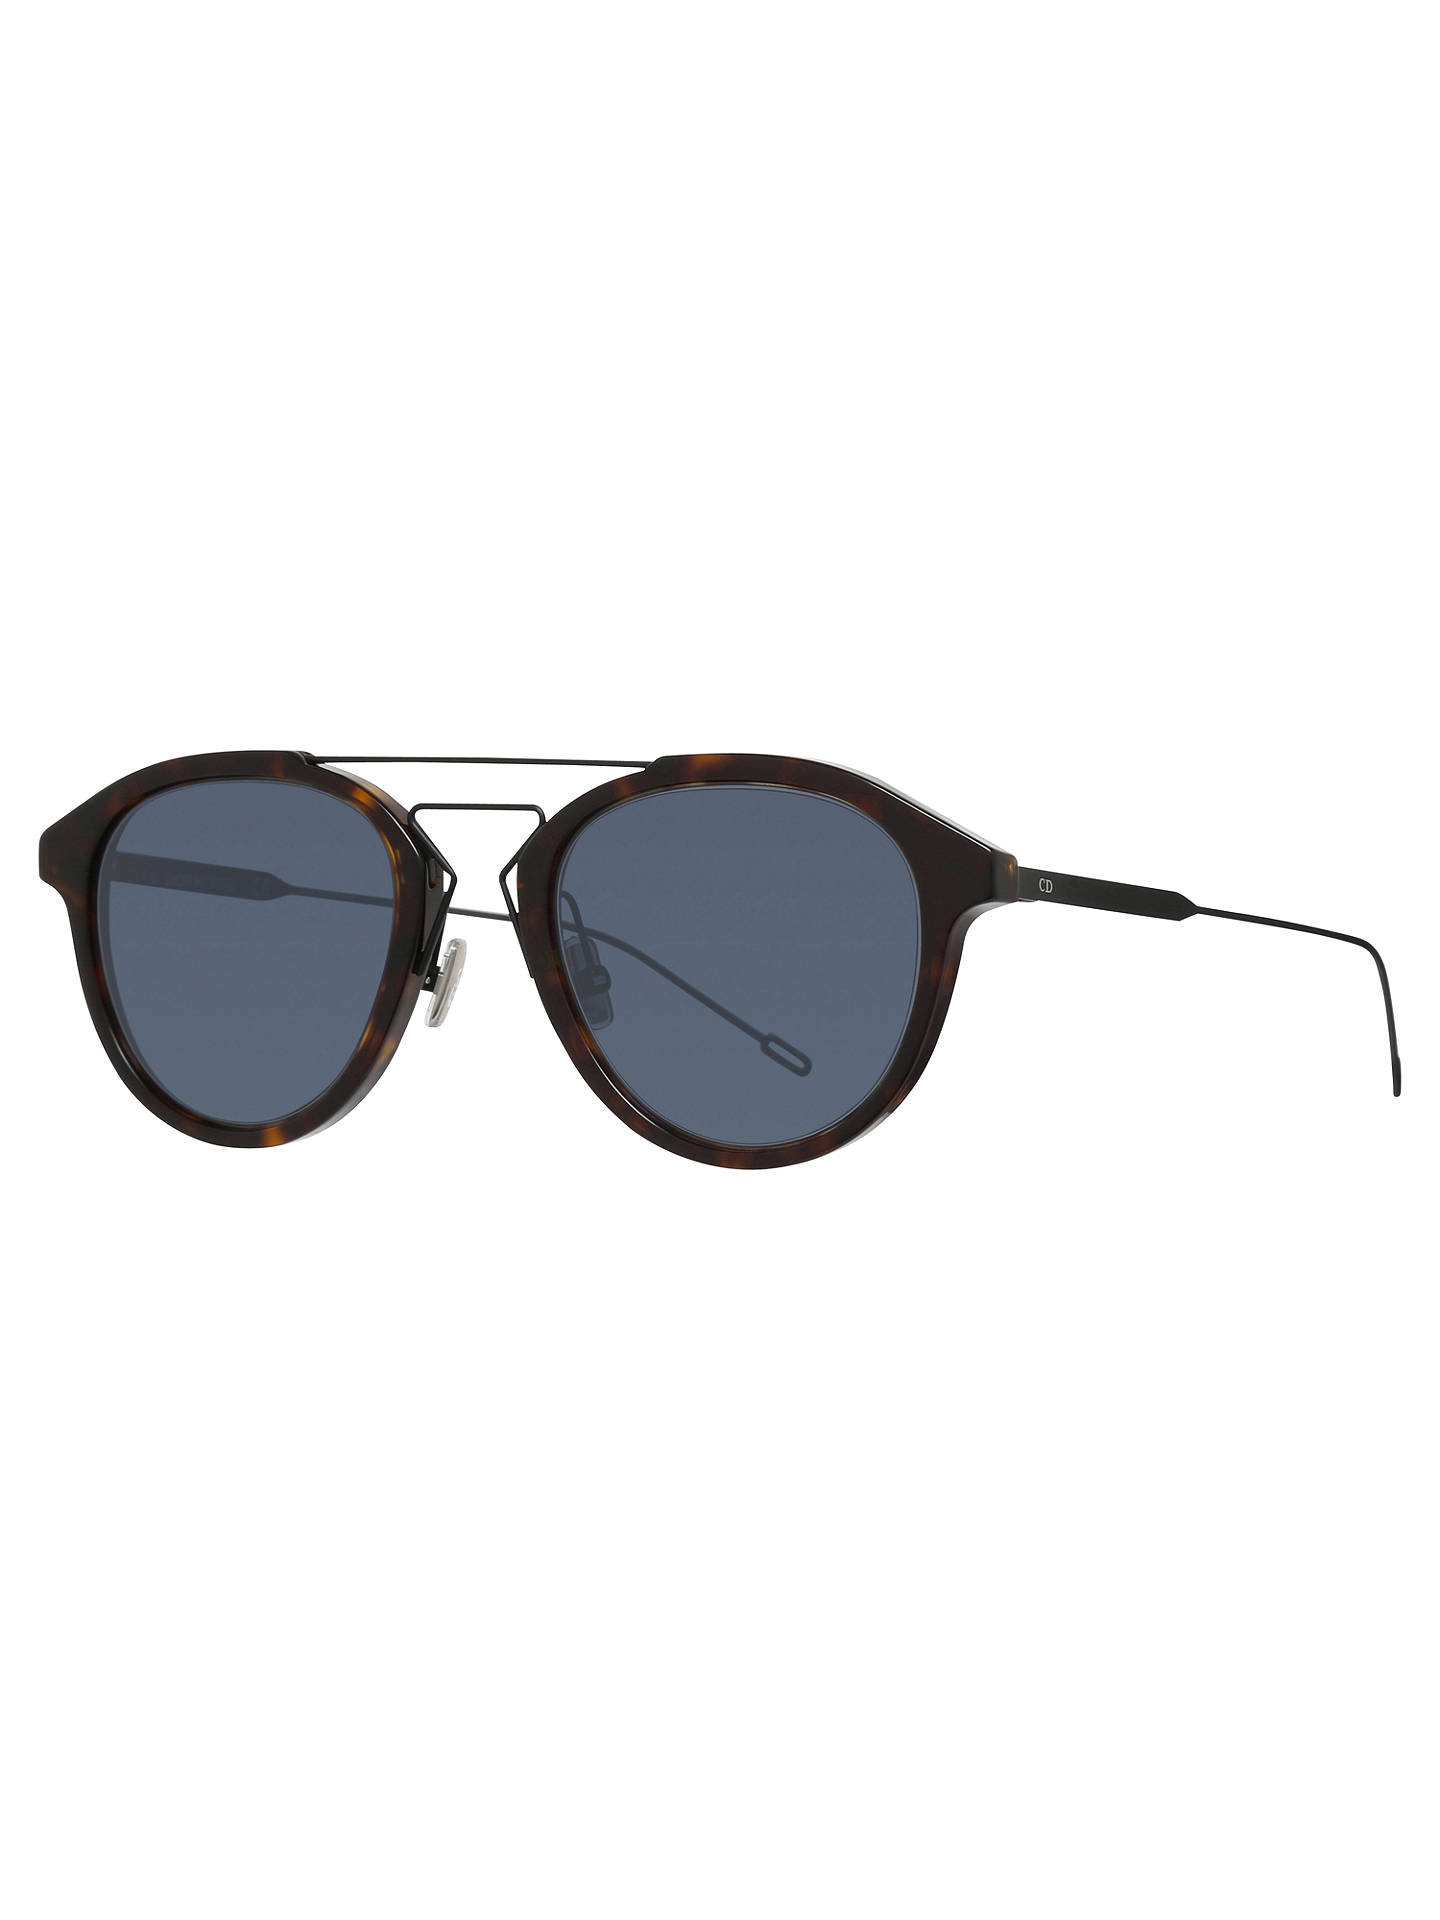 701d296111 Dior Blacktie226S Oval Sunglasses at John Lewis   Partners